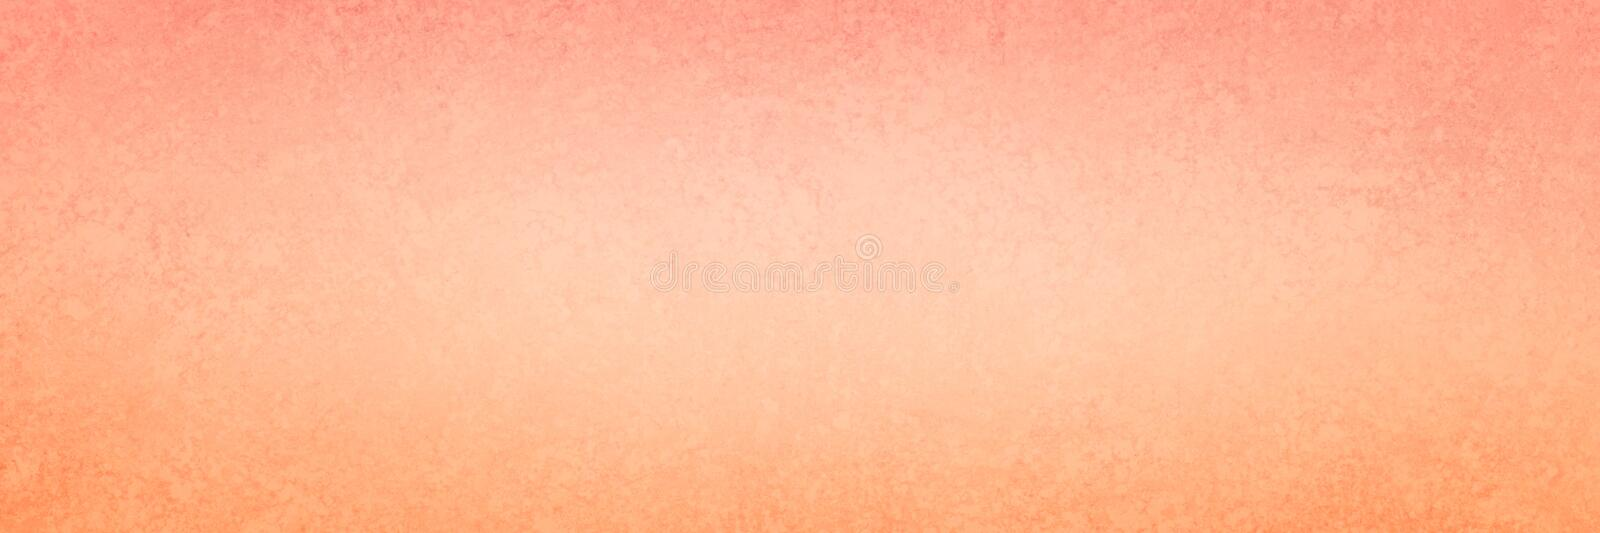 Orange and pink banner background with soft pretty coral or salmon colors and faint vintage grunge texture design in elegant paper stock illustration